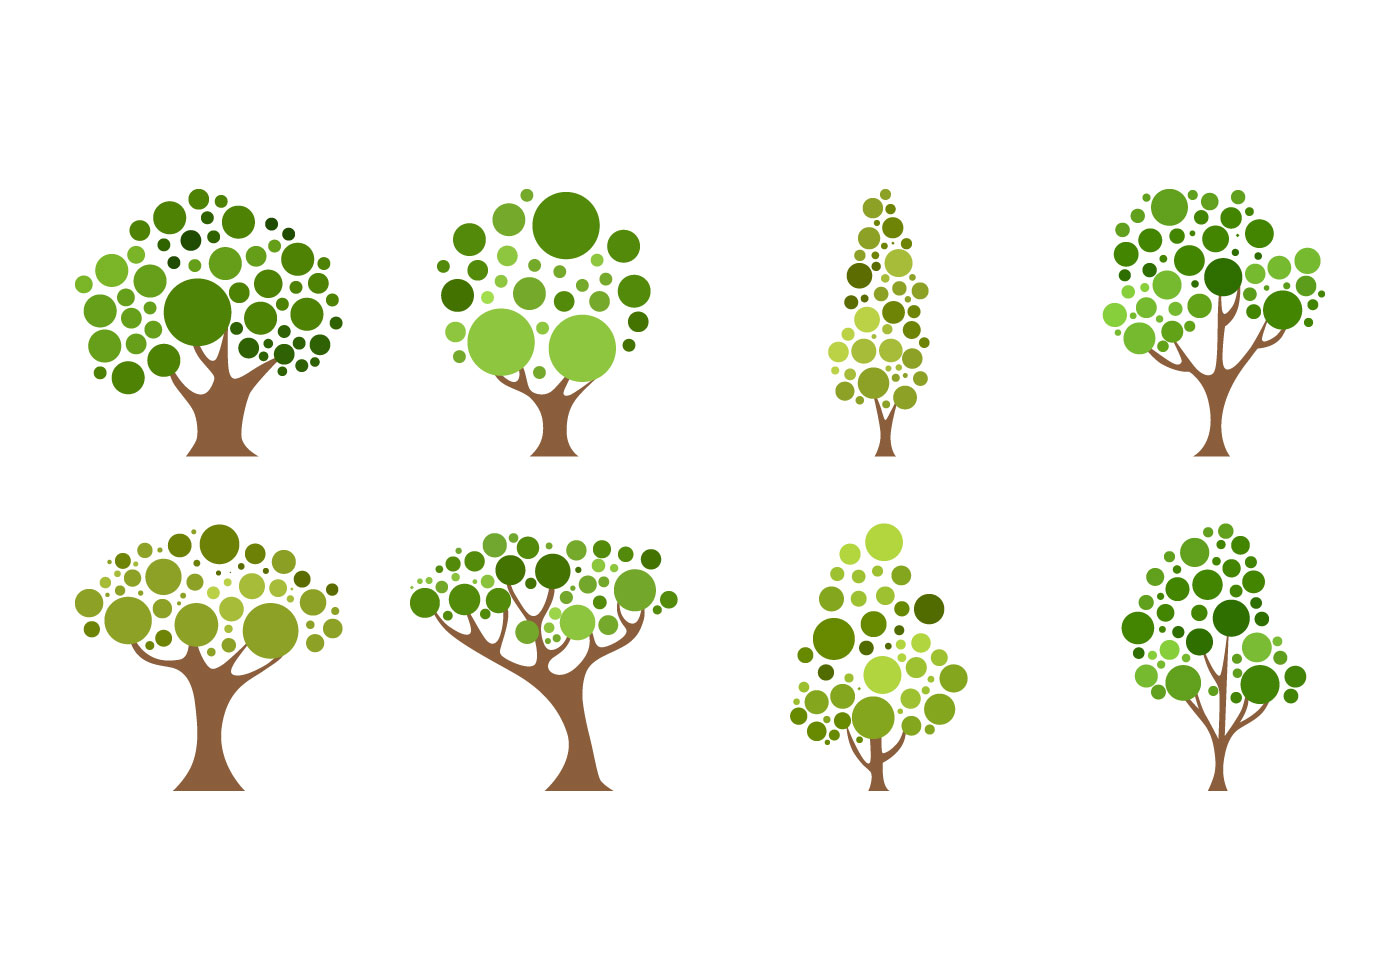 Cartoon Tree Icon Vector Download Free Vectors Clipart Graphics Vector Art Highly detailed 3d model of cartoon tree. https www vecteezy com vector art 130432 cartoon tree icon vector